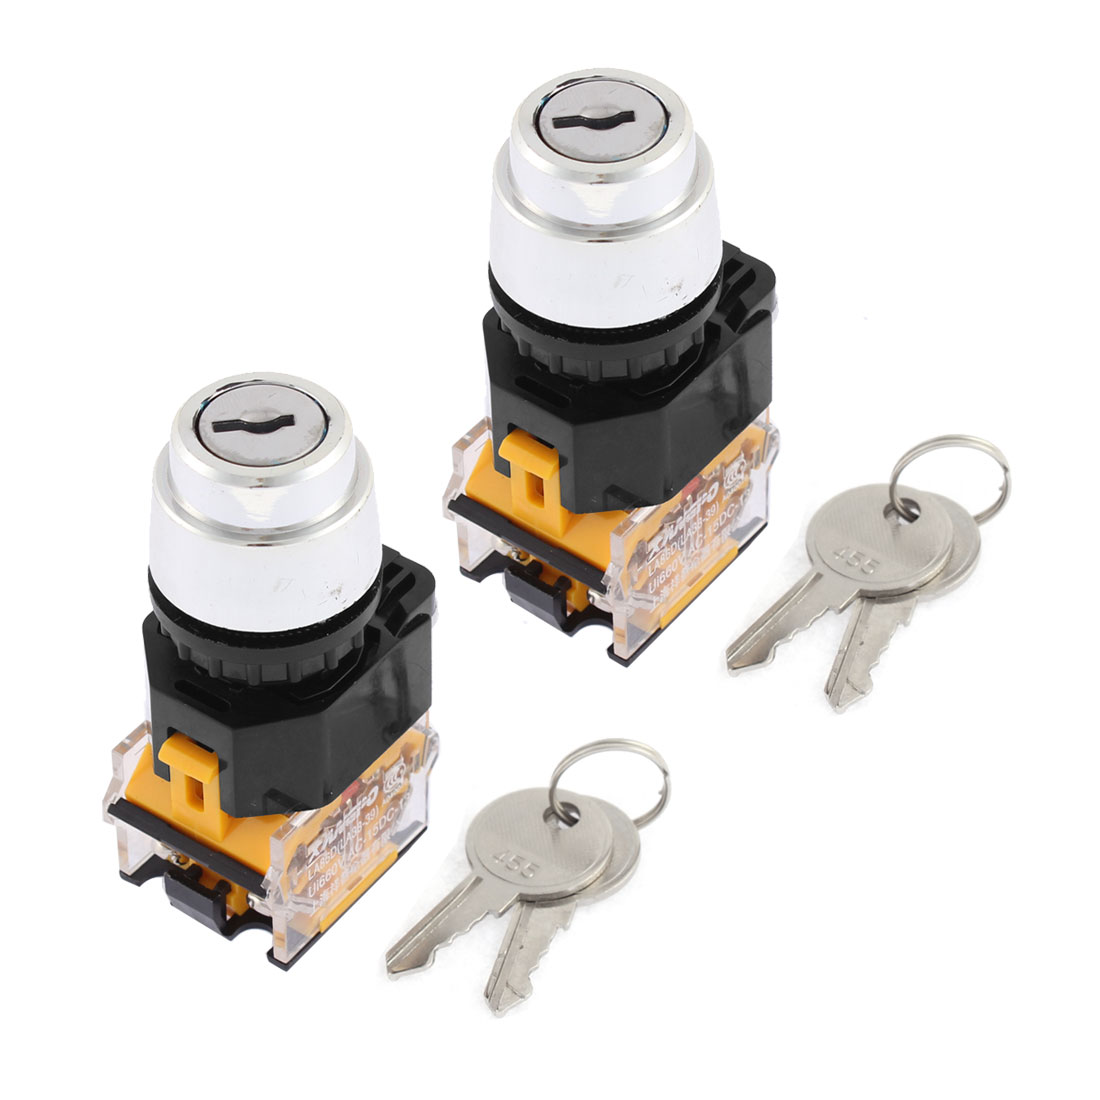 2 Pcs LA86D 2-Position 2NO Key Start Locking Momentary Power Switch AC 380V 10A